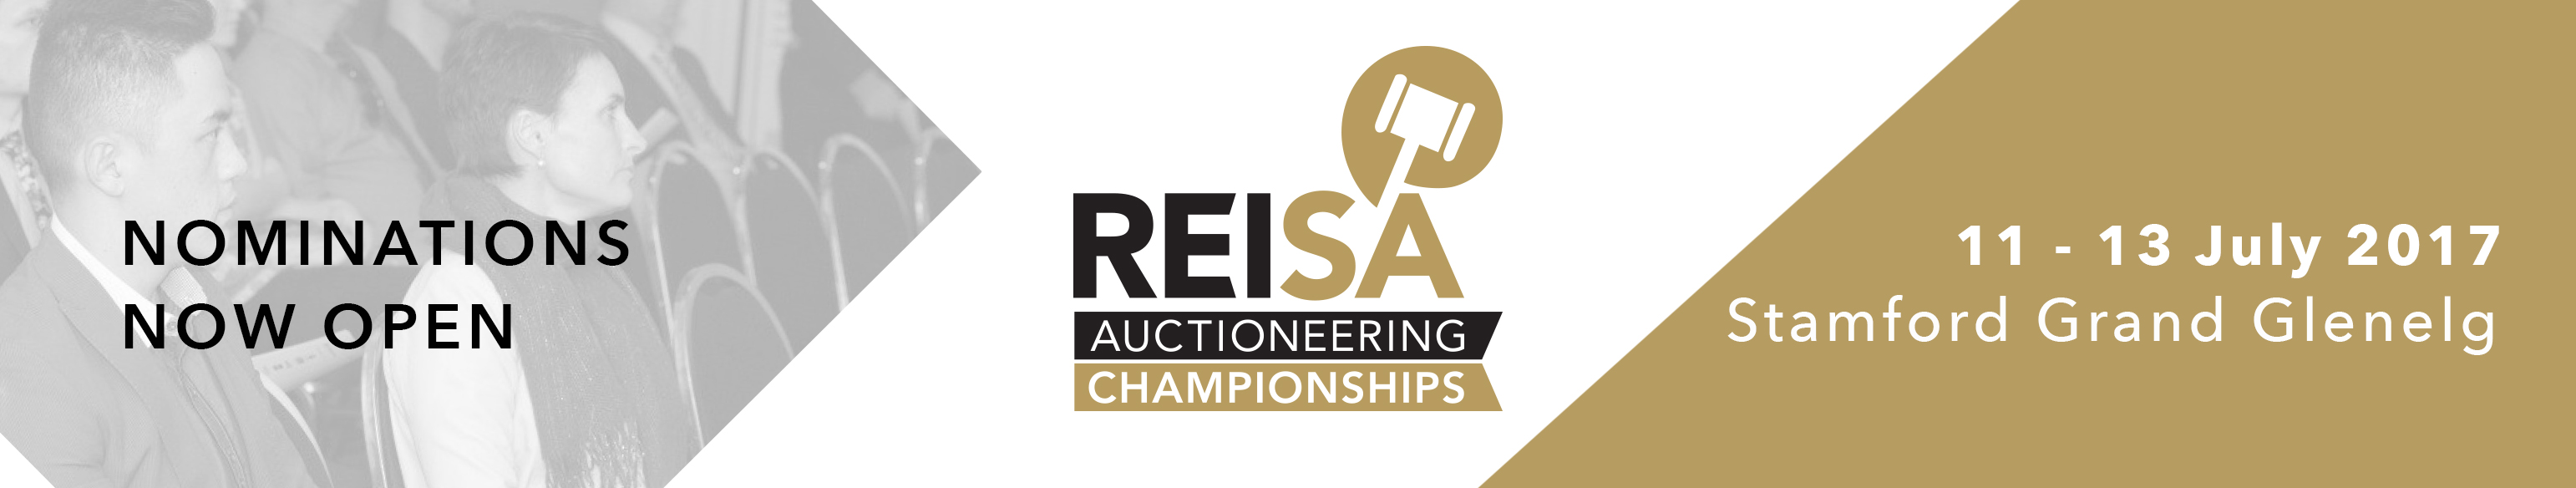 REISA Auctioneering Championship Nominations long banner